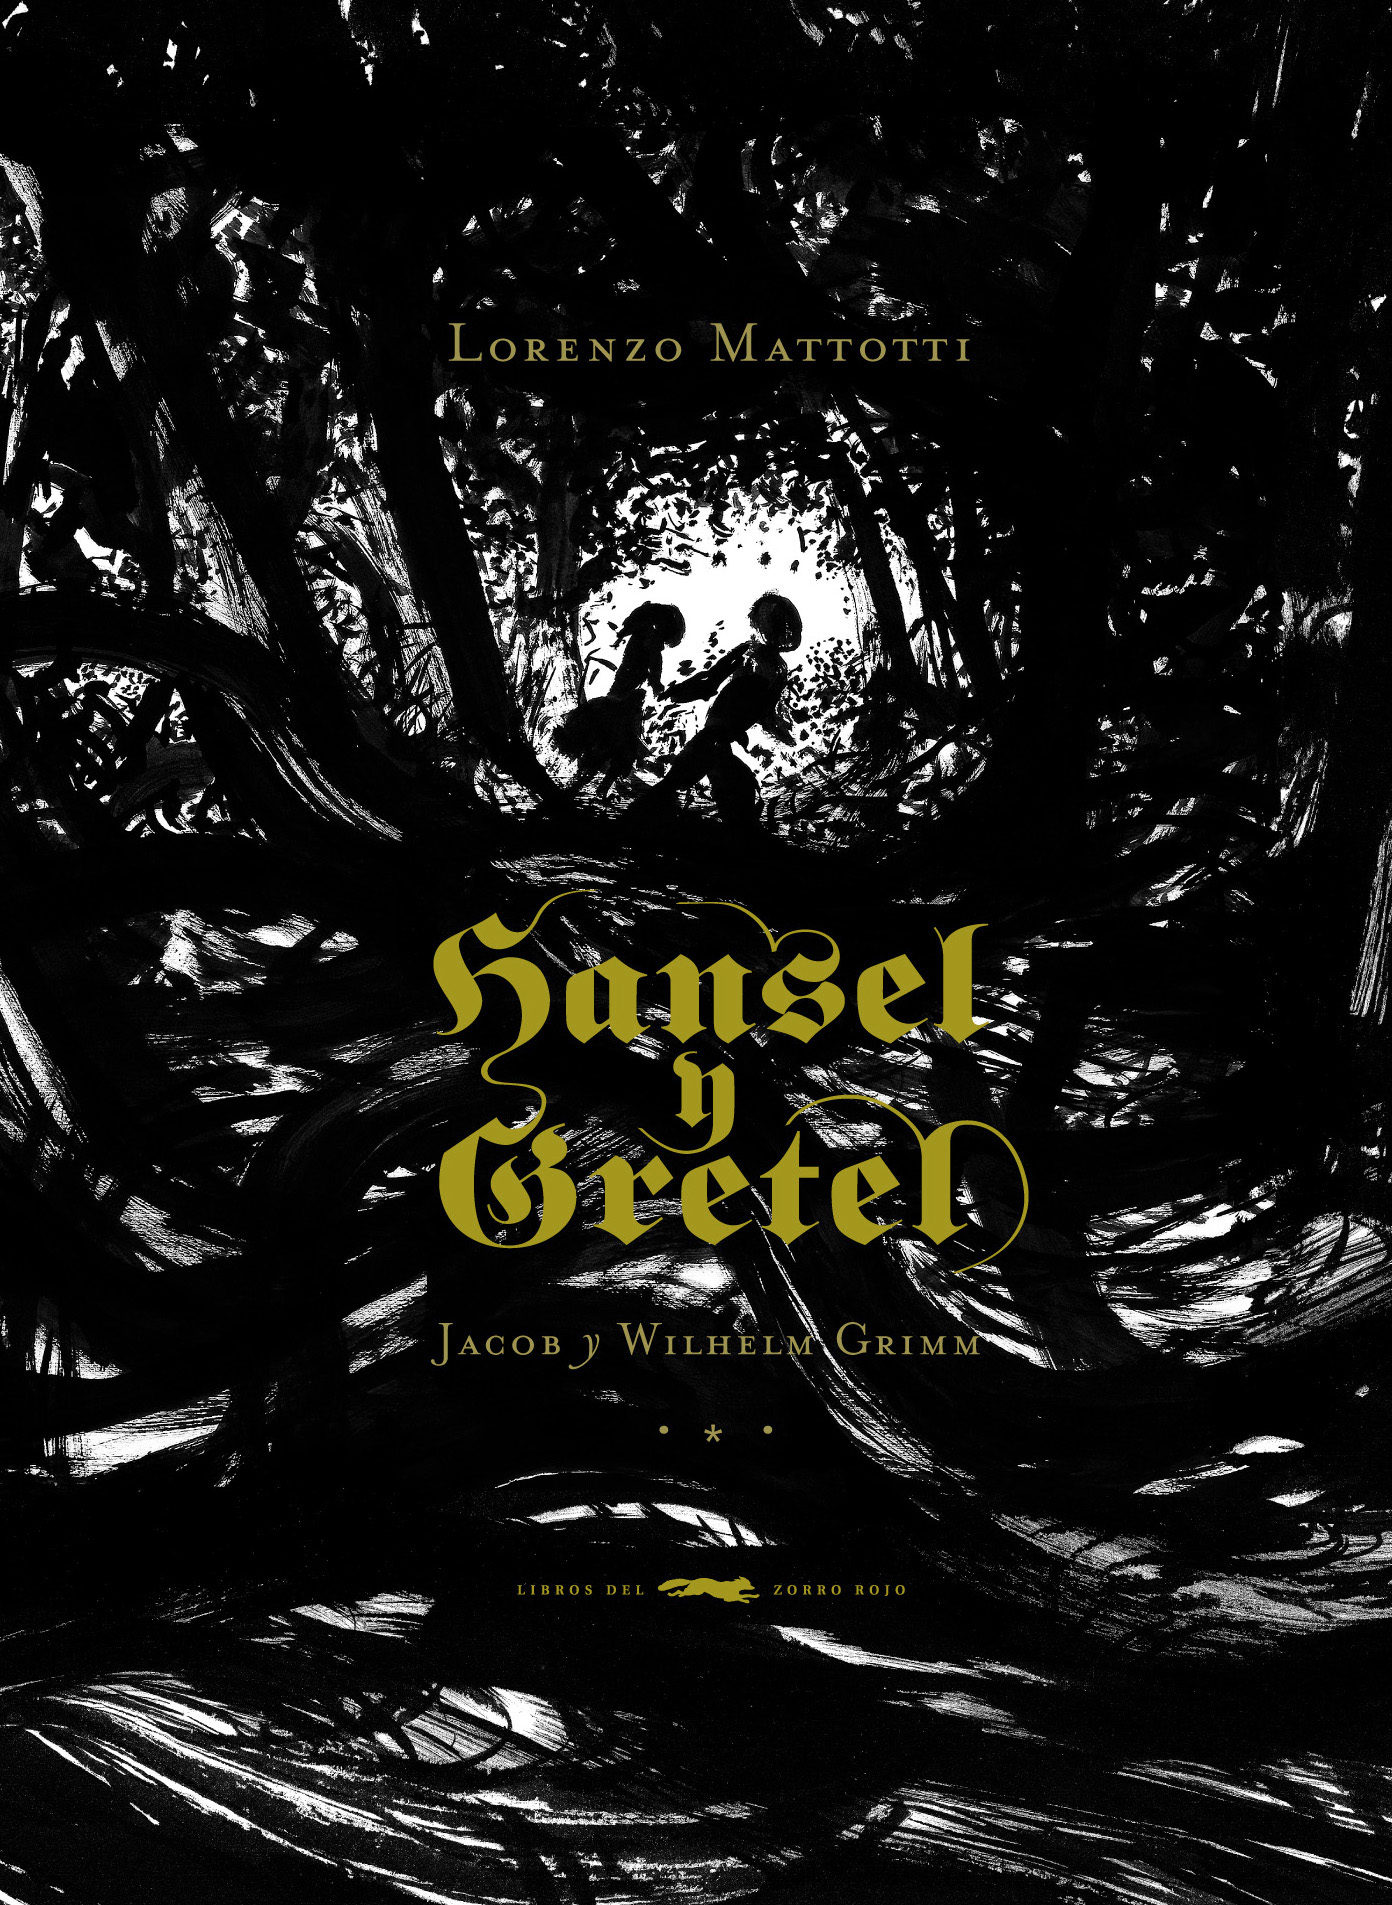 Libros Kindle Descargar Hansel Y Gretel Kindleton Descarga Libros Gratis Para